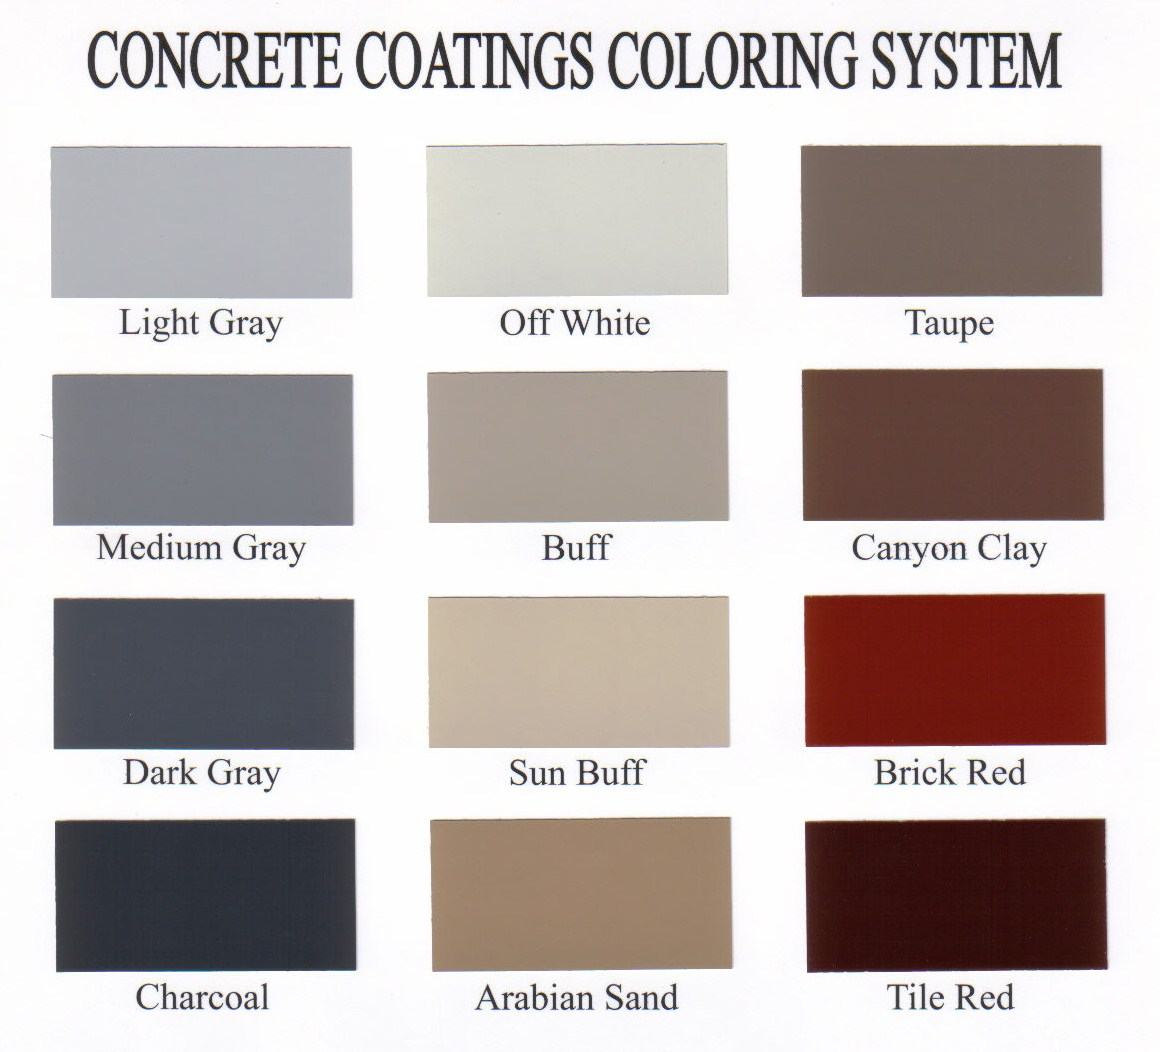 Armour tint deco crete supply armour tint color chart geenschuldenfo Choice Image